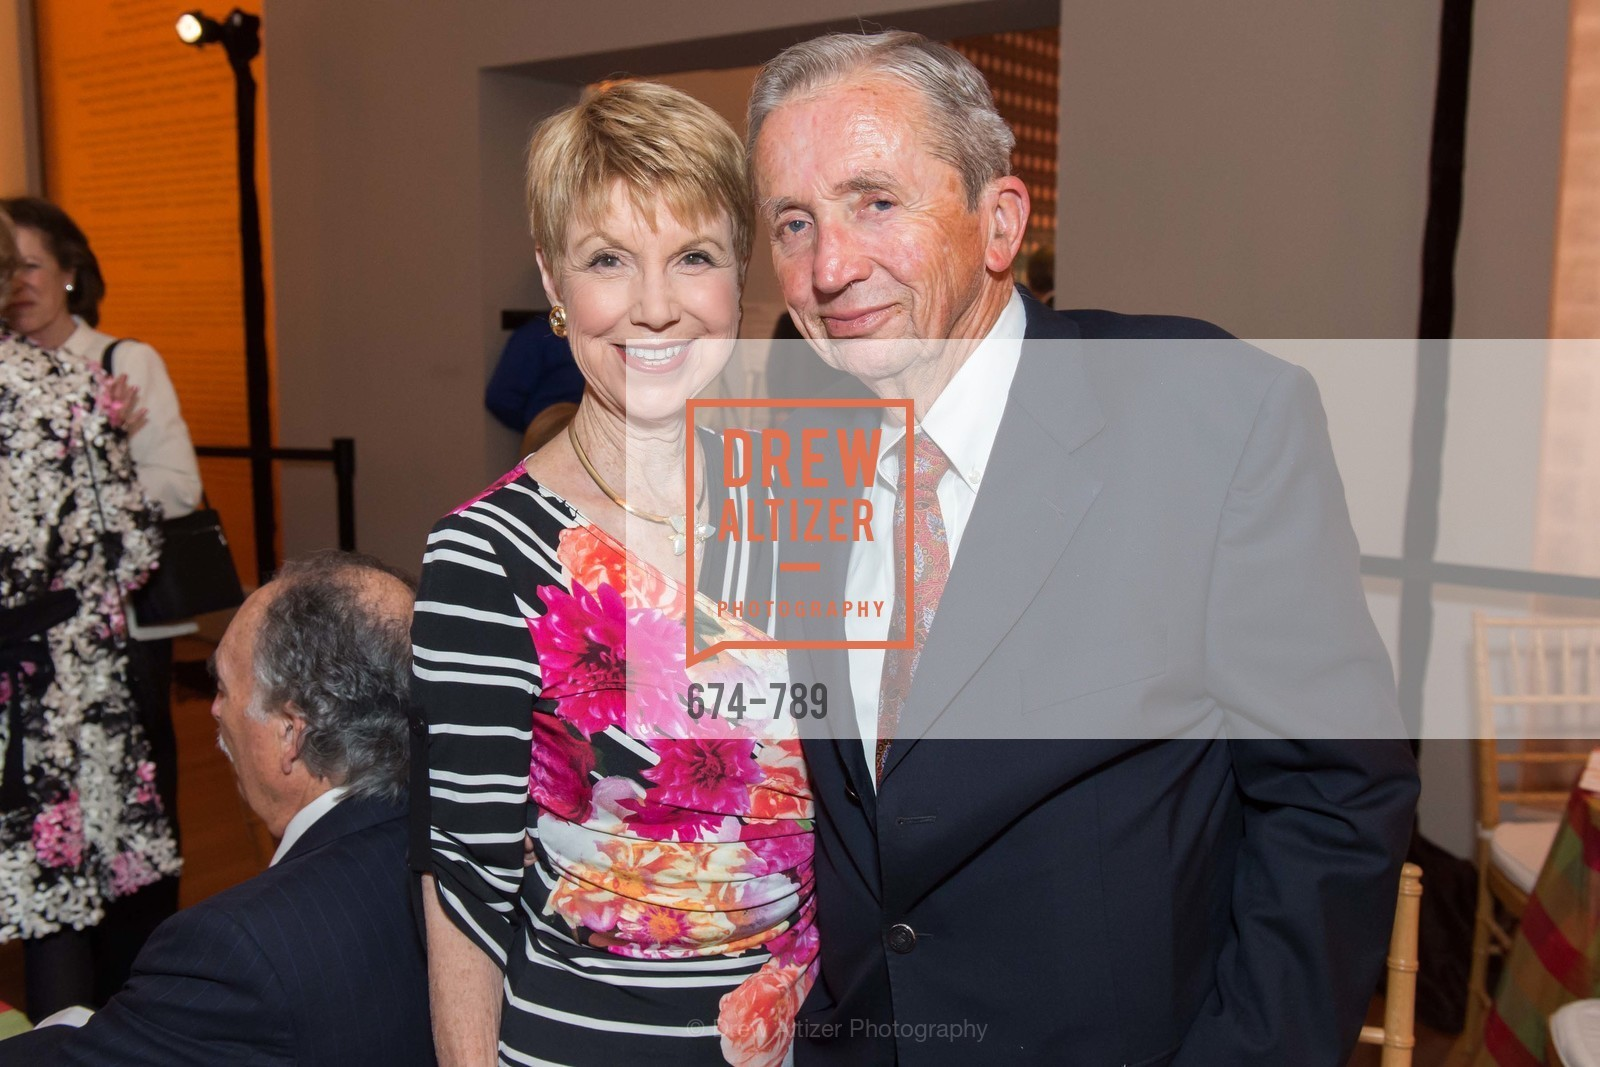 Martha Woollomes, Paul Woollomes, ALONZO KING LINE'S Ballet Spring Gala 2015, US, April 12th, 2015,Drew Altizer, Drew Altizer Photography, full-service agency, private events, San Francisco photographer, photographer california